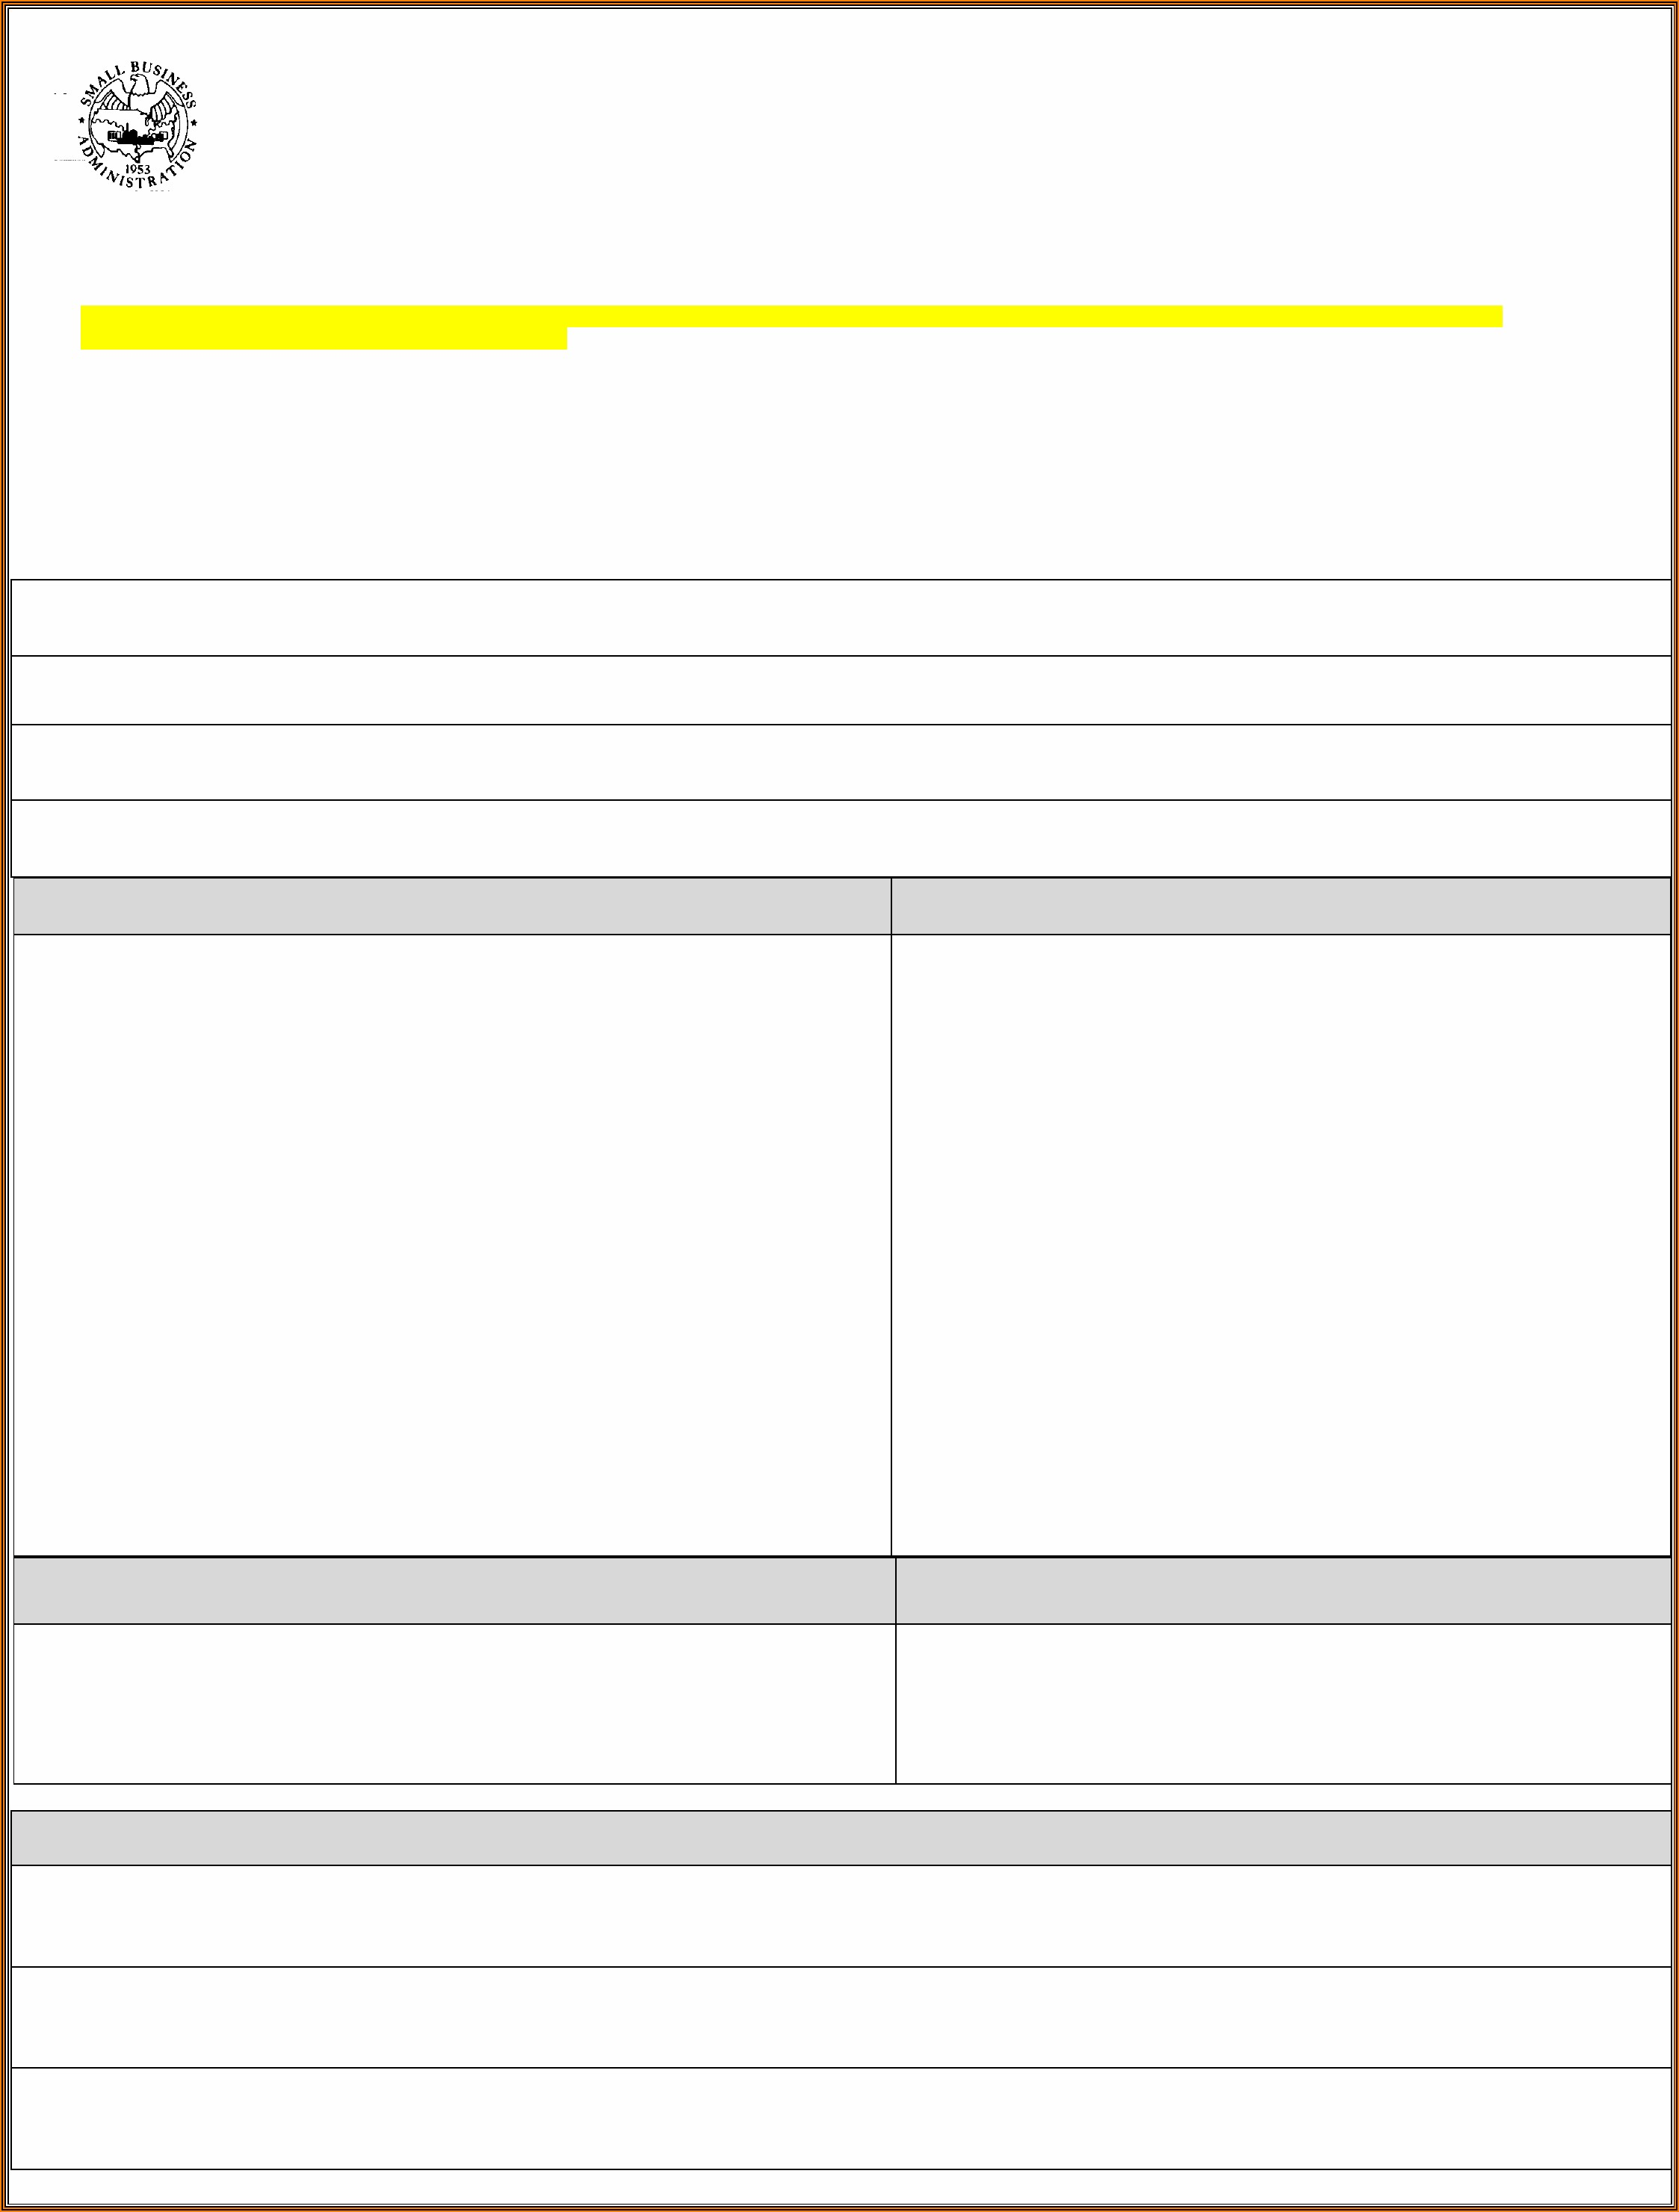 Free Blank Personal Financial Statement Form Download